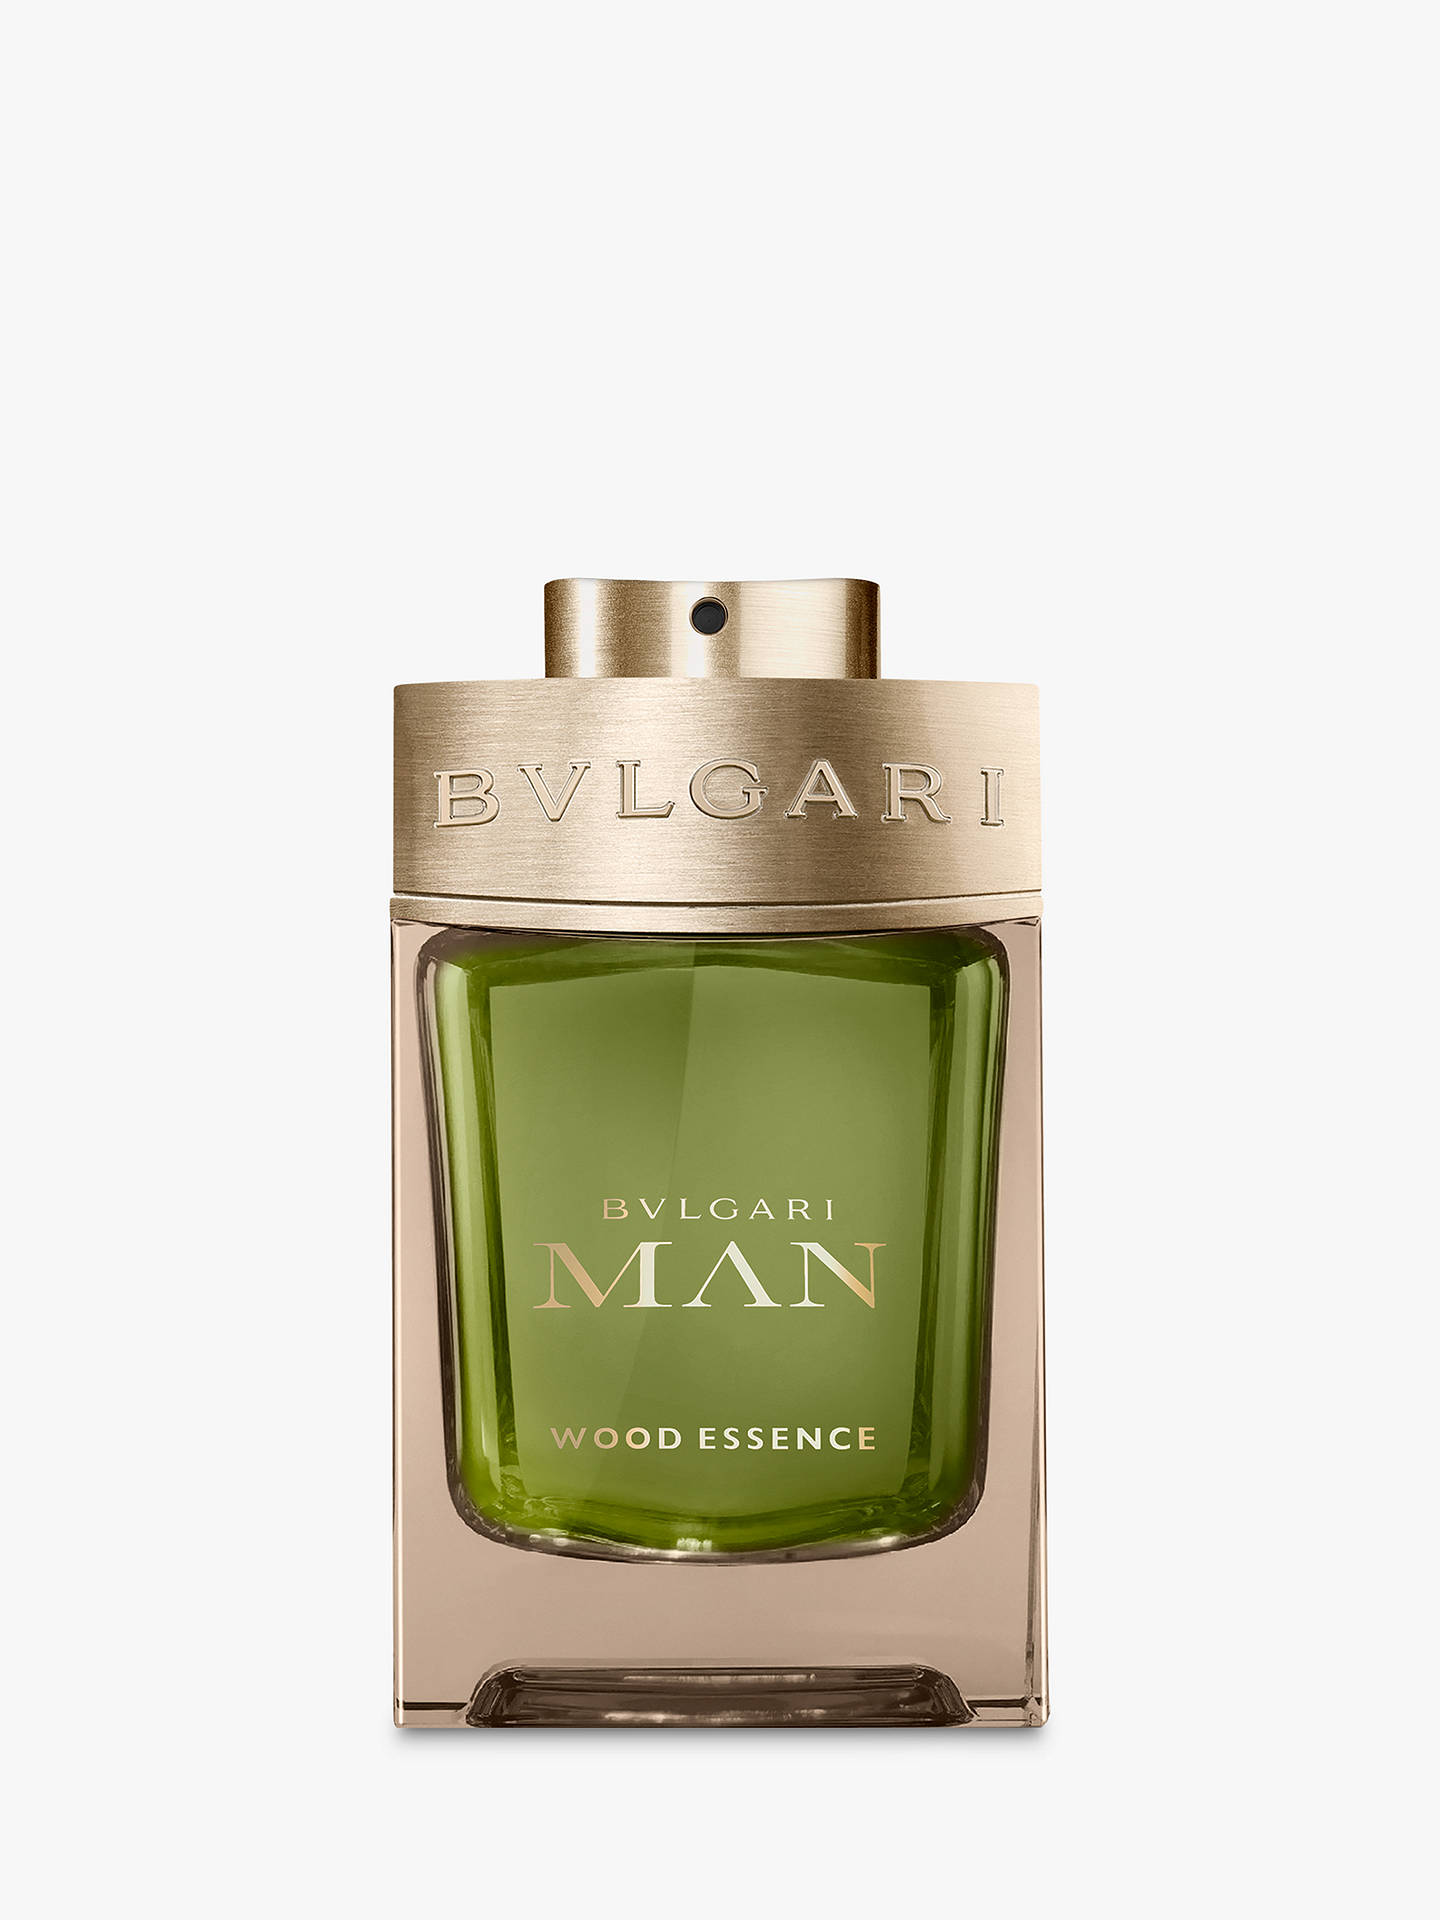 Bvlgari Man Wood Essence Eau De Parfum At John Lewis Partners